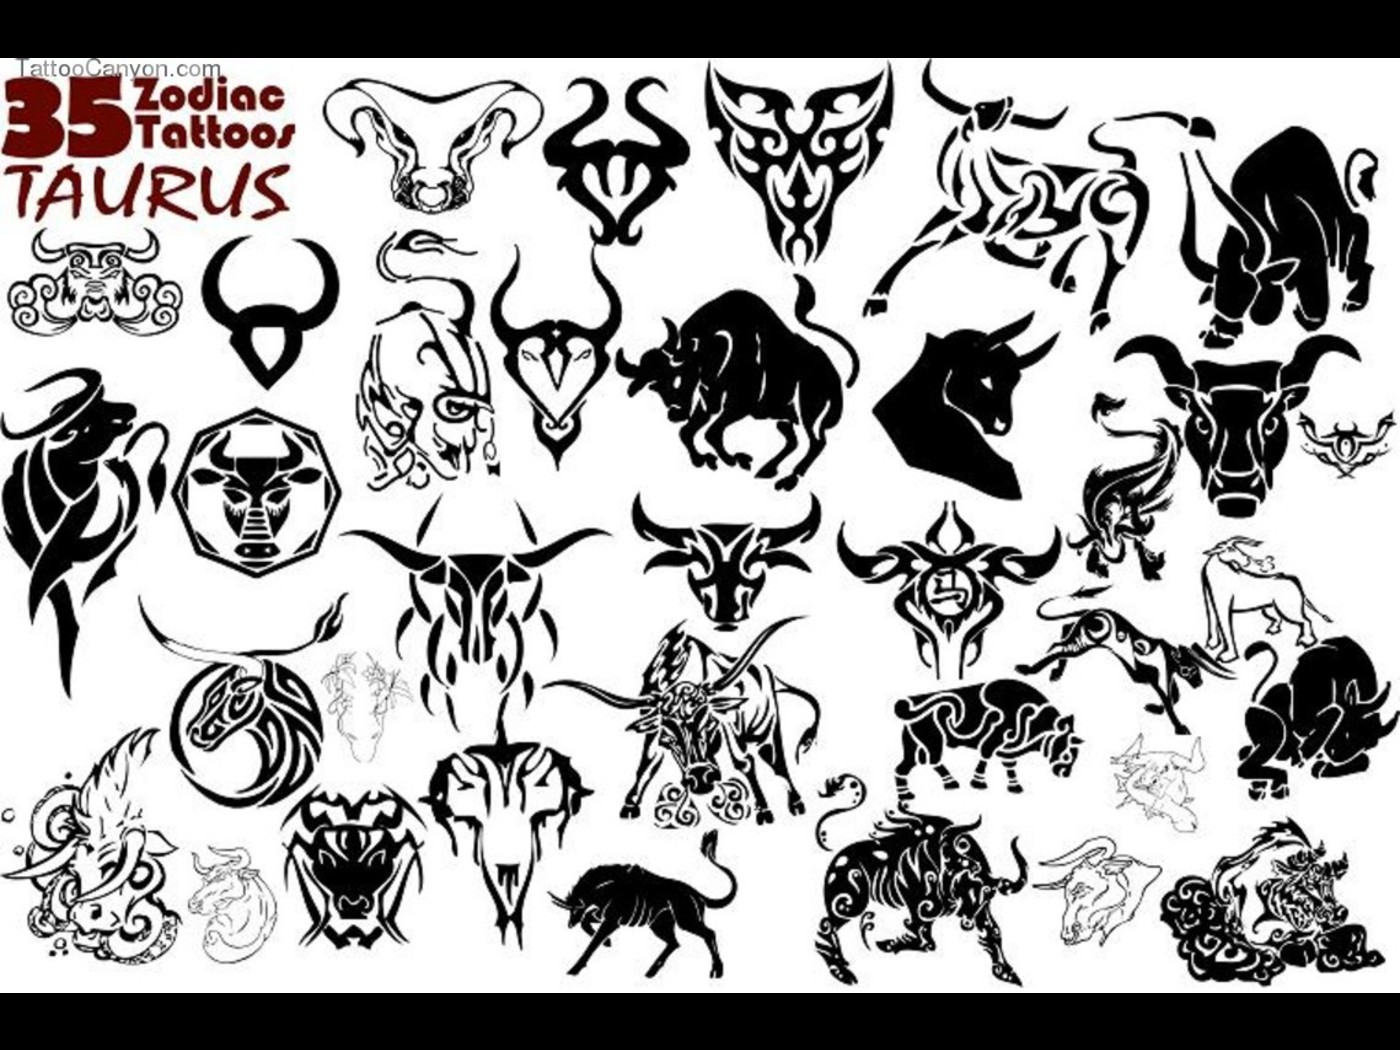 Pics photos taurus tattoos bull tattoo art - Black Ink Taurus Tattoos Designs